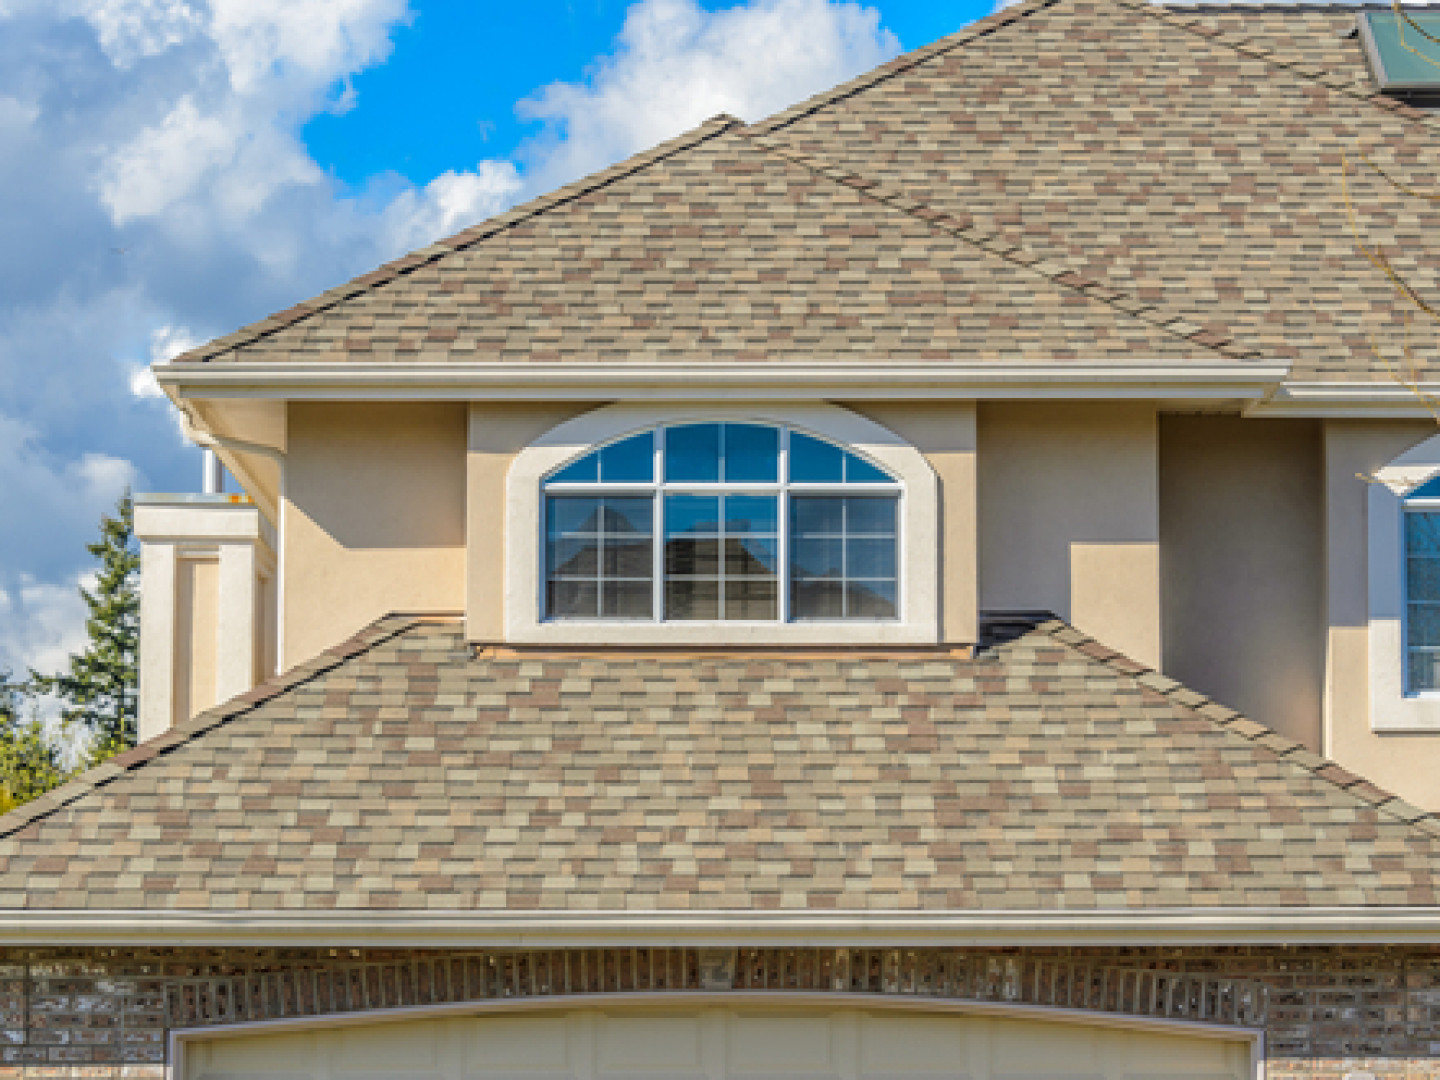 Roof Installation Services | Snellville, GA | Frank Roofing LLC